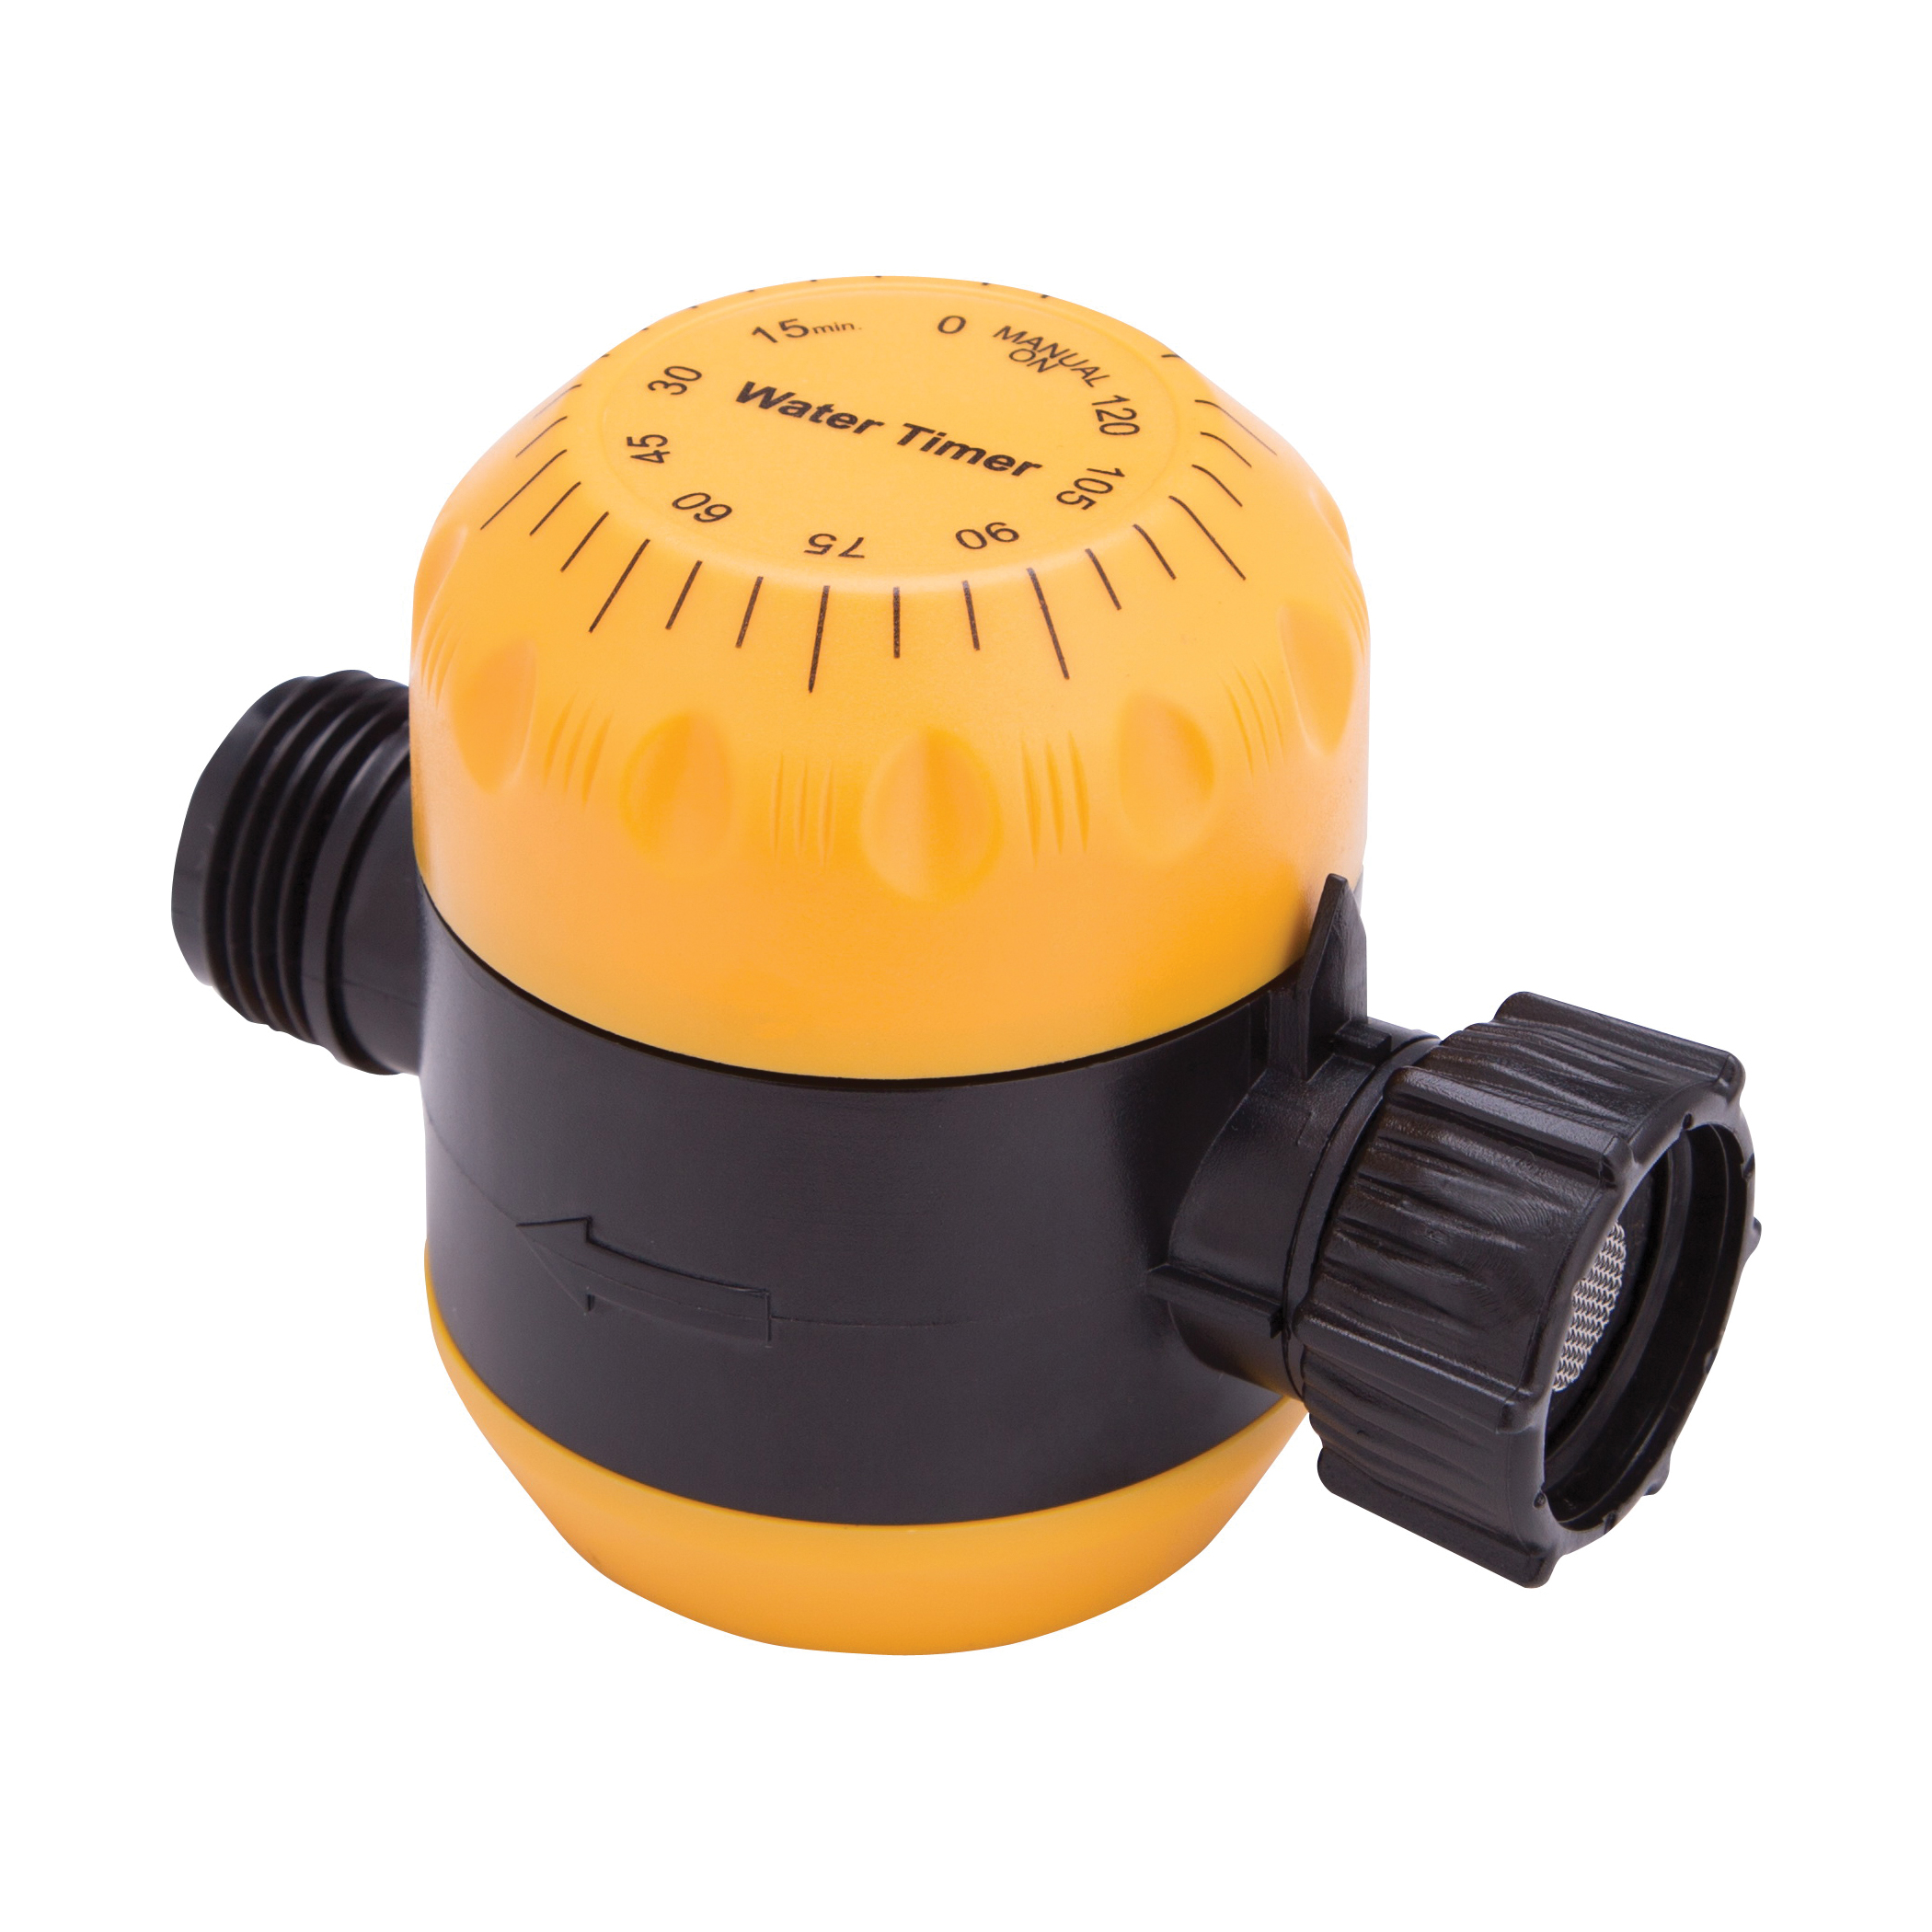 Picture of Landscapers Select GS5613L Watering Timer, 3/4 in Connection, Male/Female, Plastic